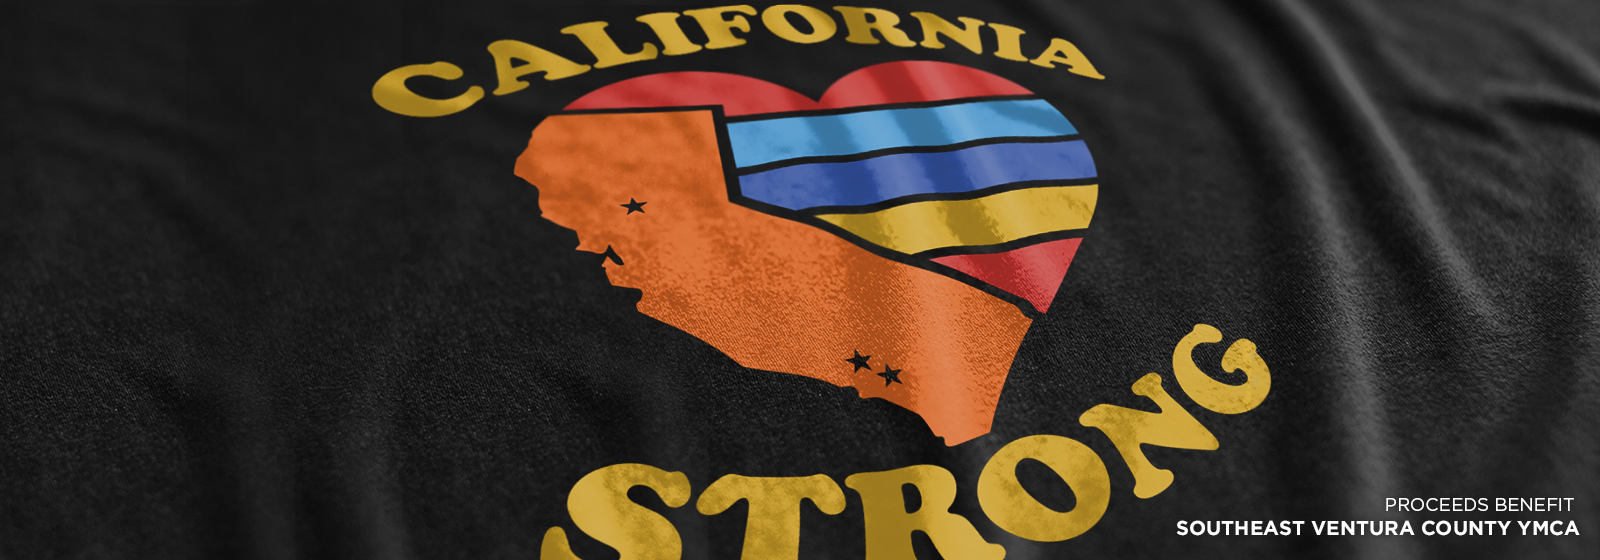 California Strong Charity Collection Store